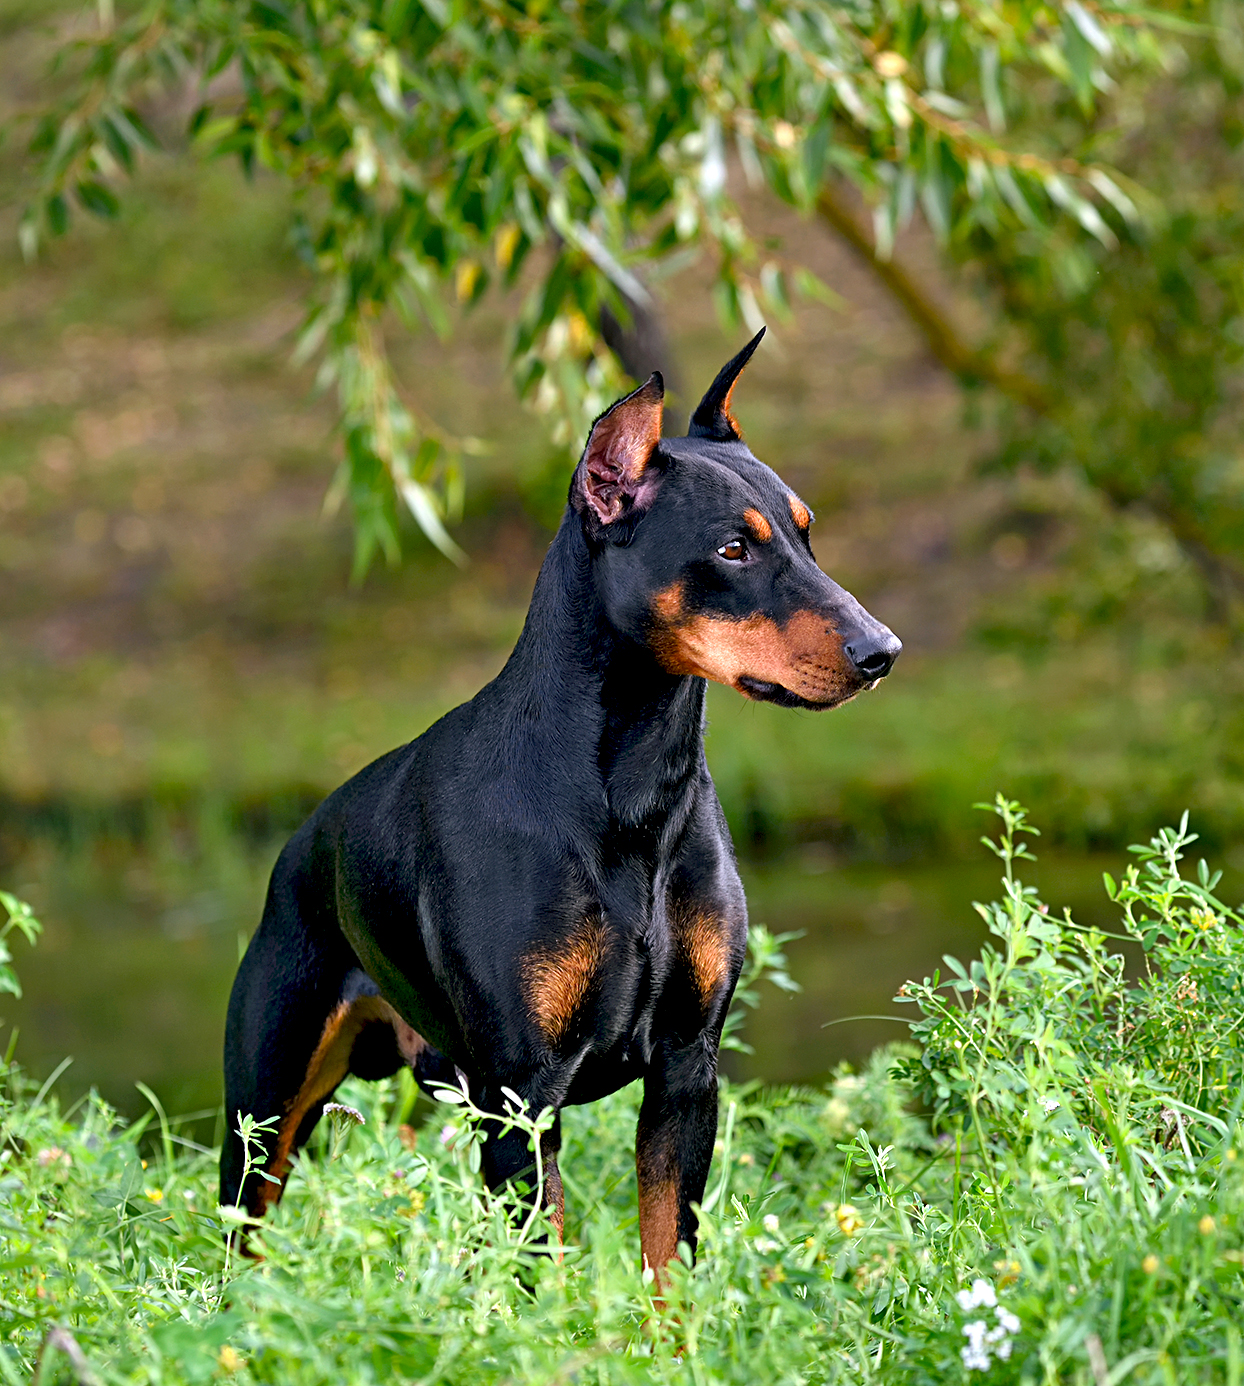 a black and brown german pinscher standing in grass on river bank